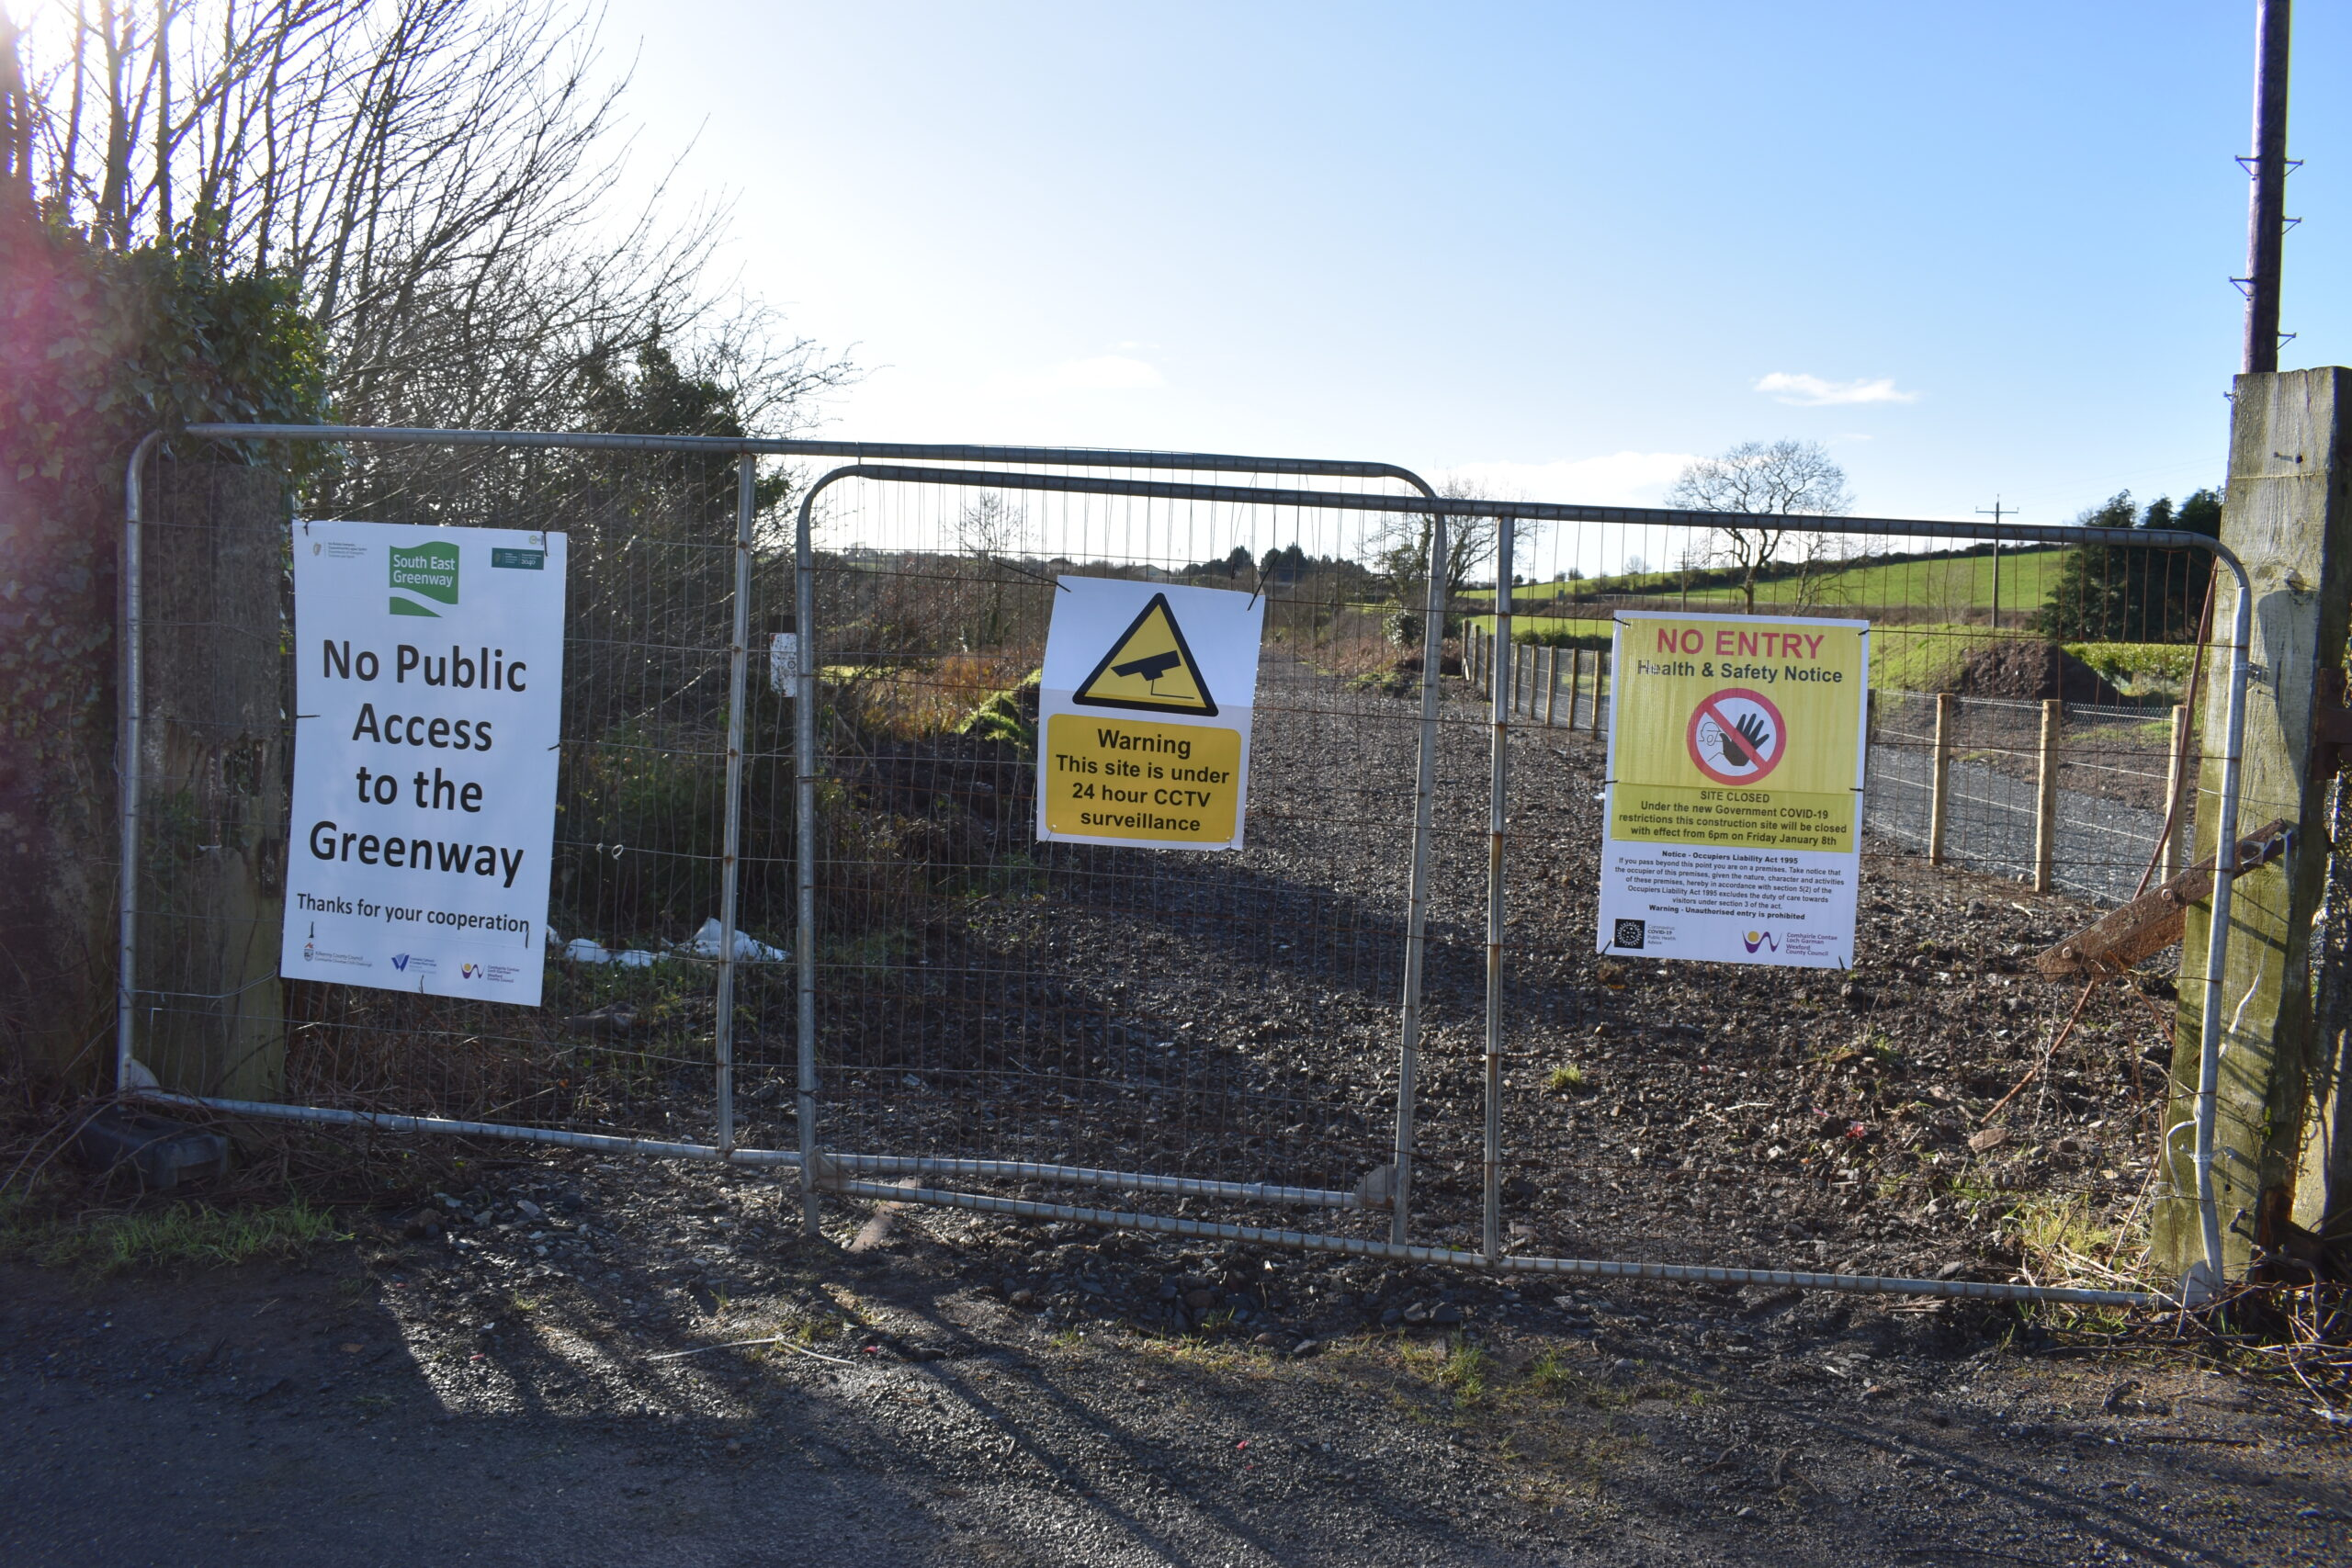 The Greenway construction site is currently closed and there is no public access allowed anywhere along the abandoned New Ross to Waterford Railway.